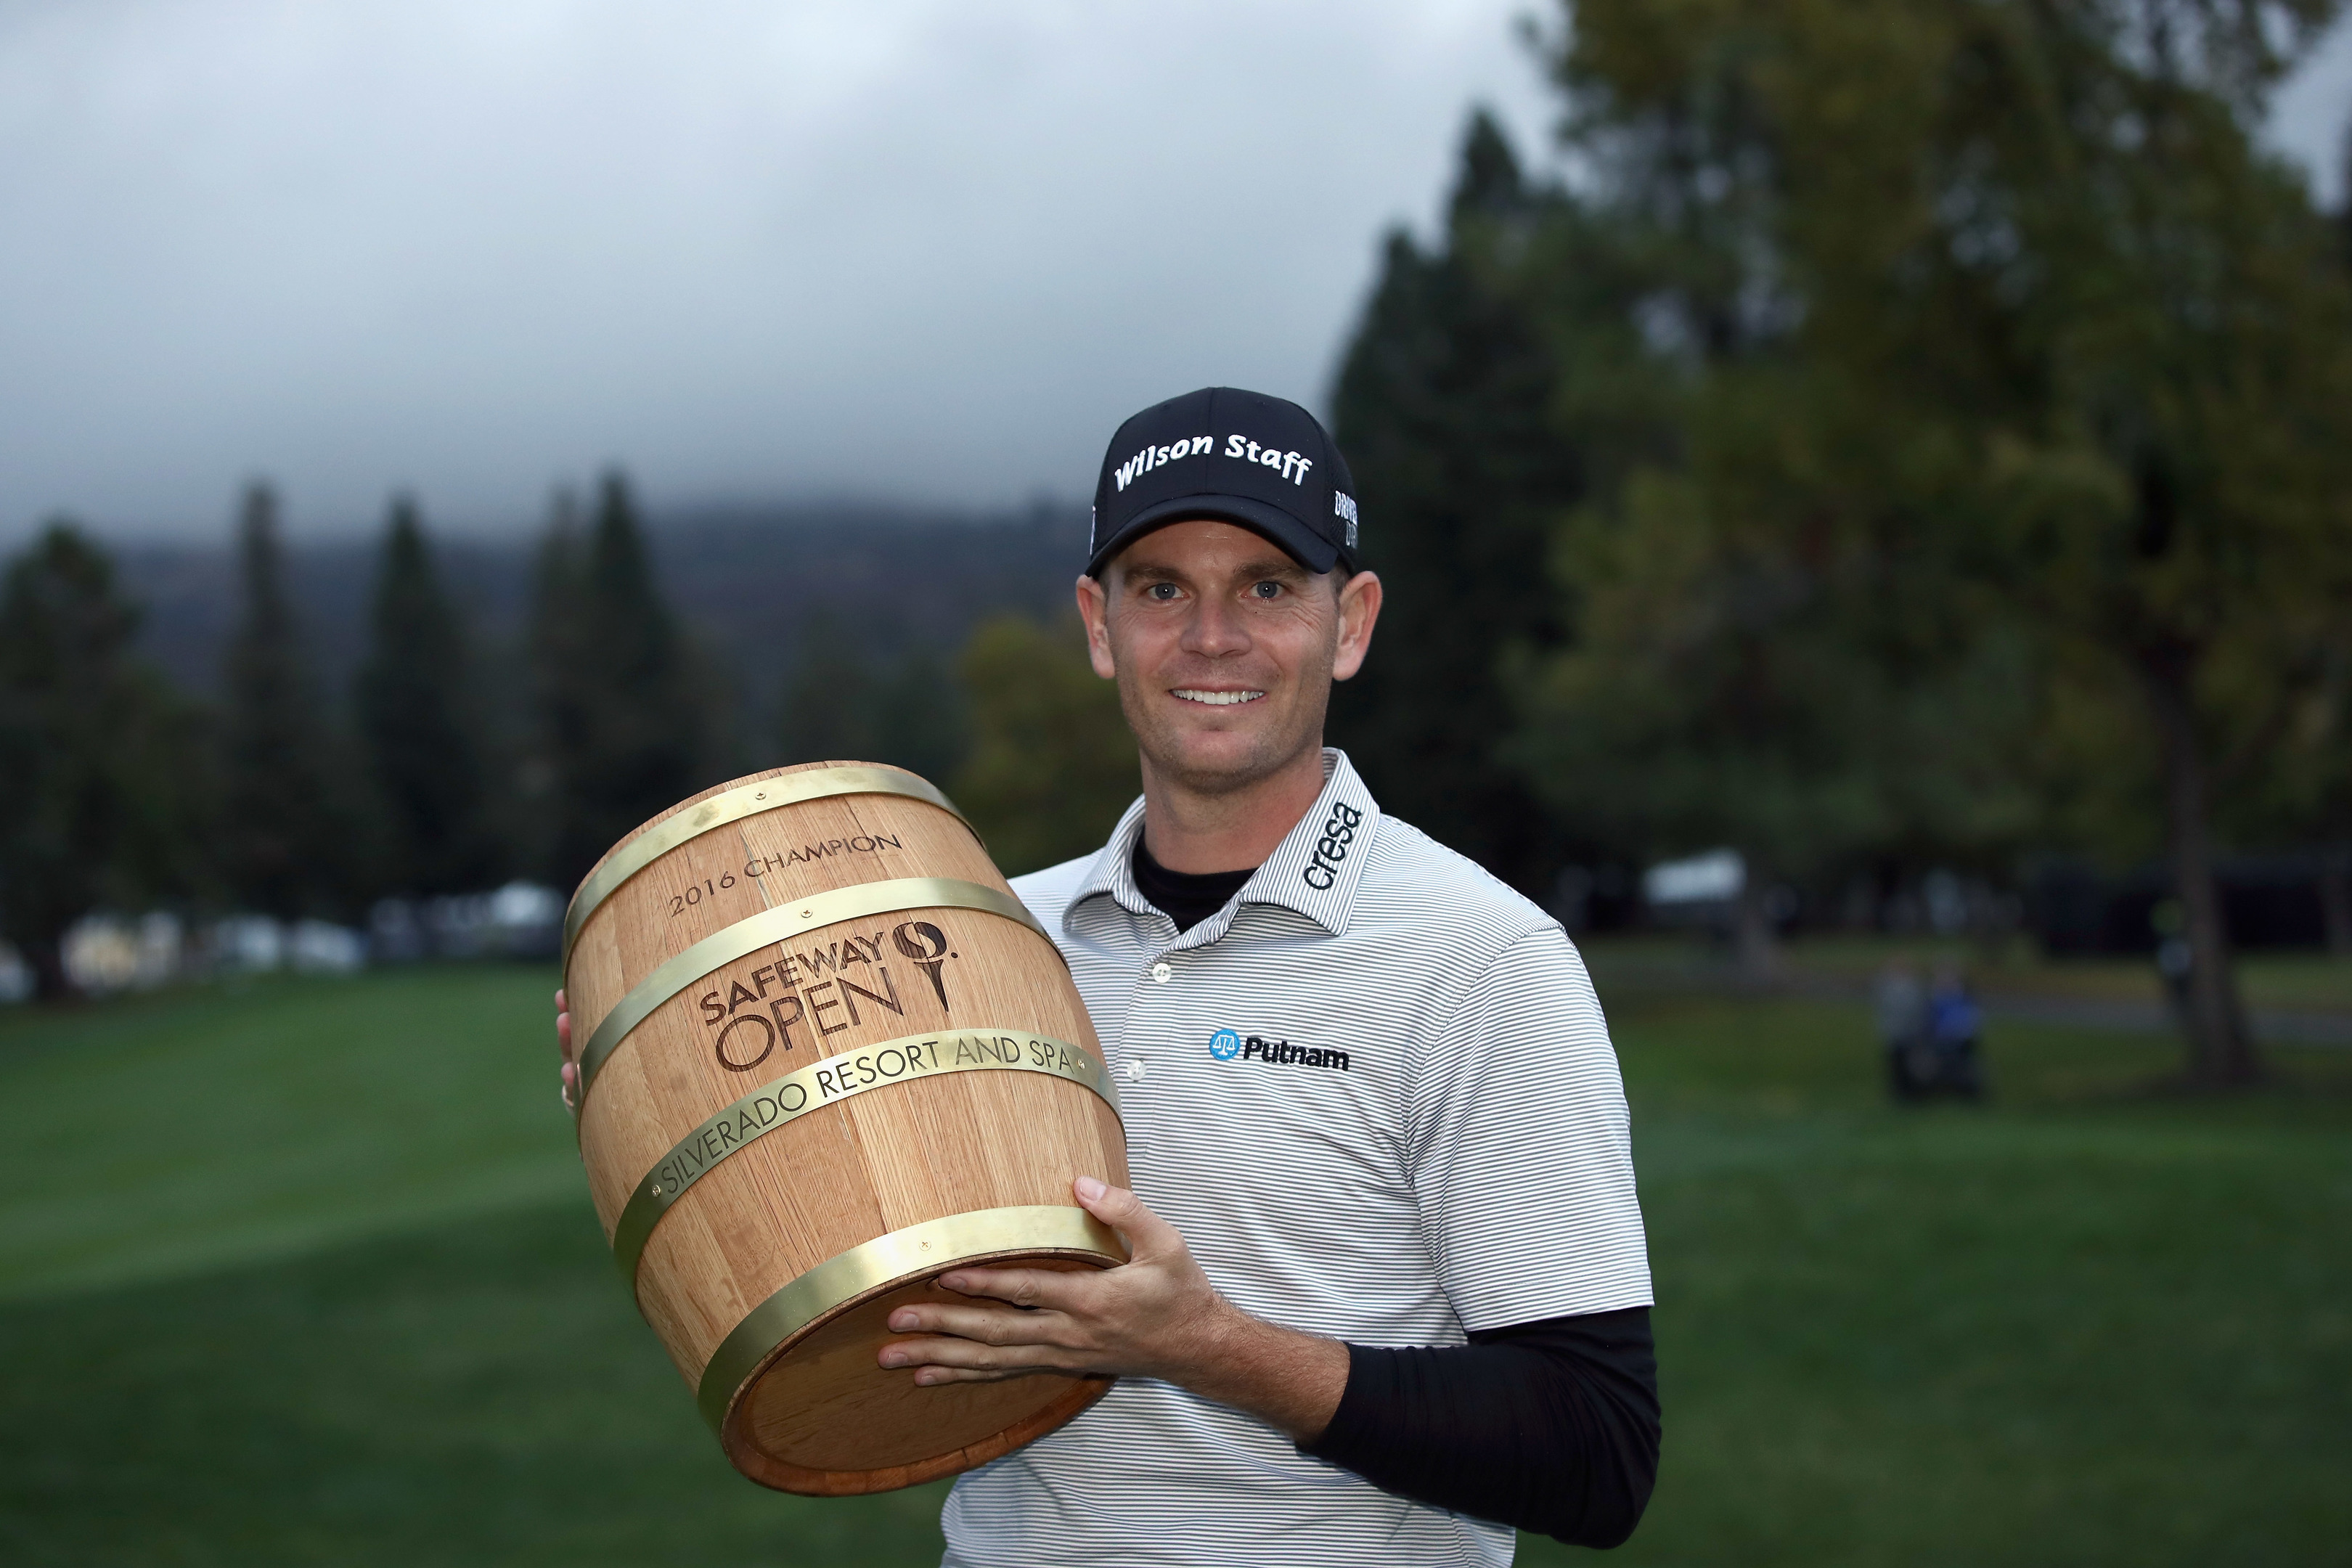 Brendan Steele is still smiling as he gets the Safeway Open Barrel, but it's because he knows that he's going to Augusta, right?